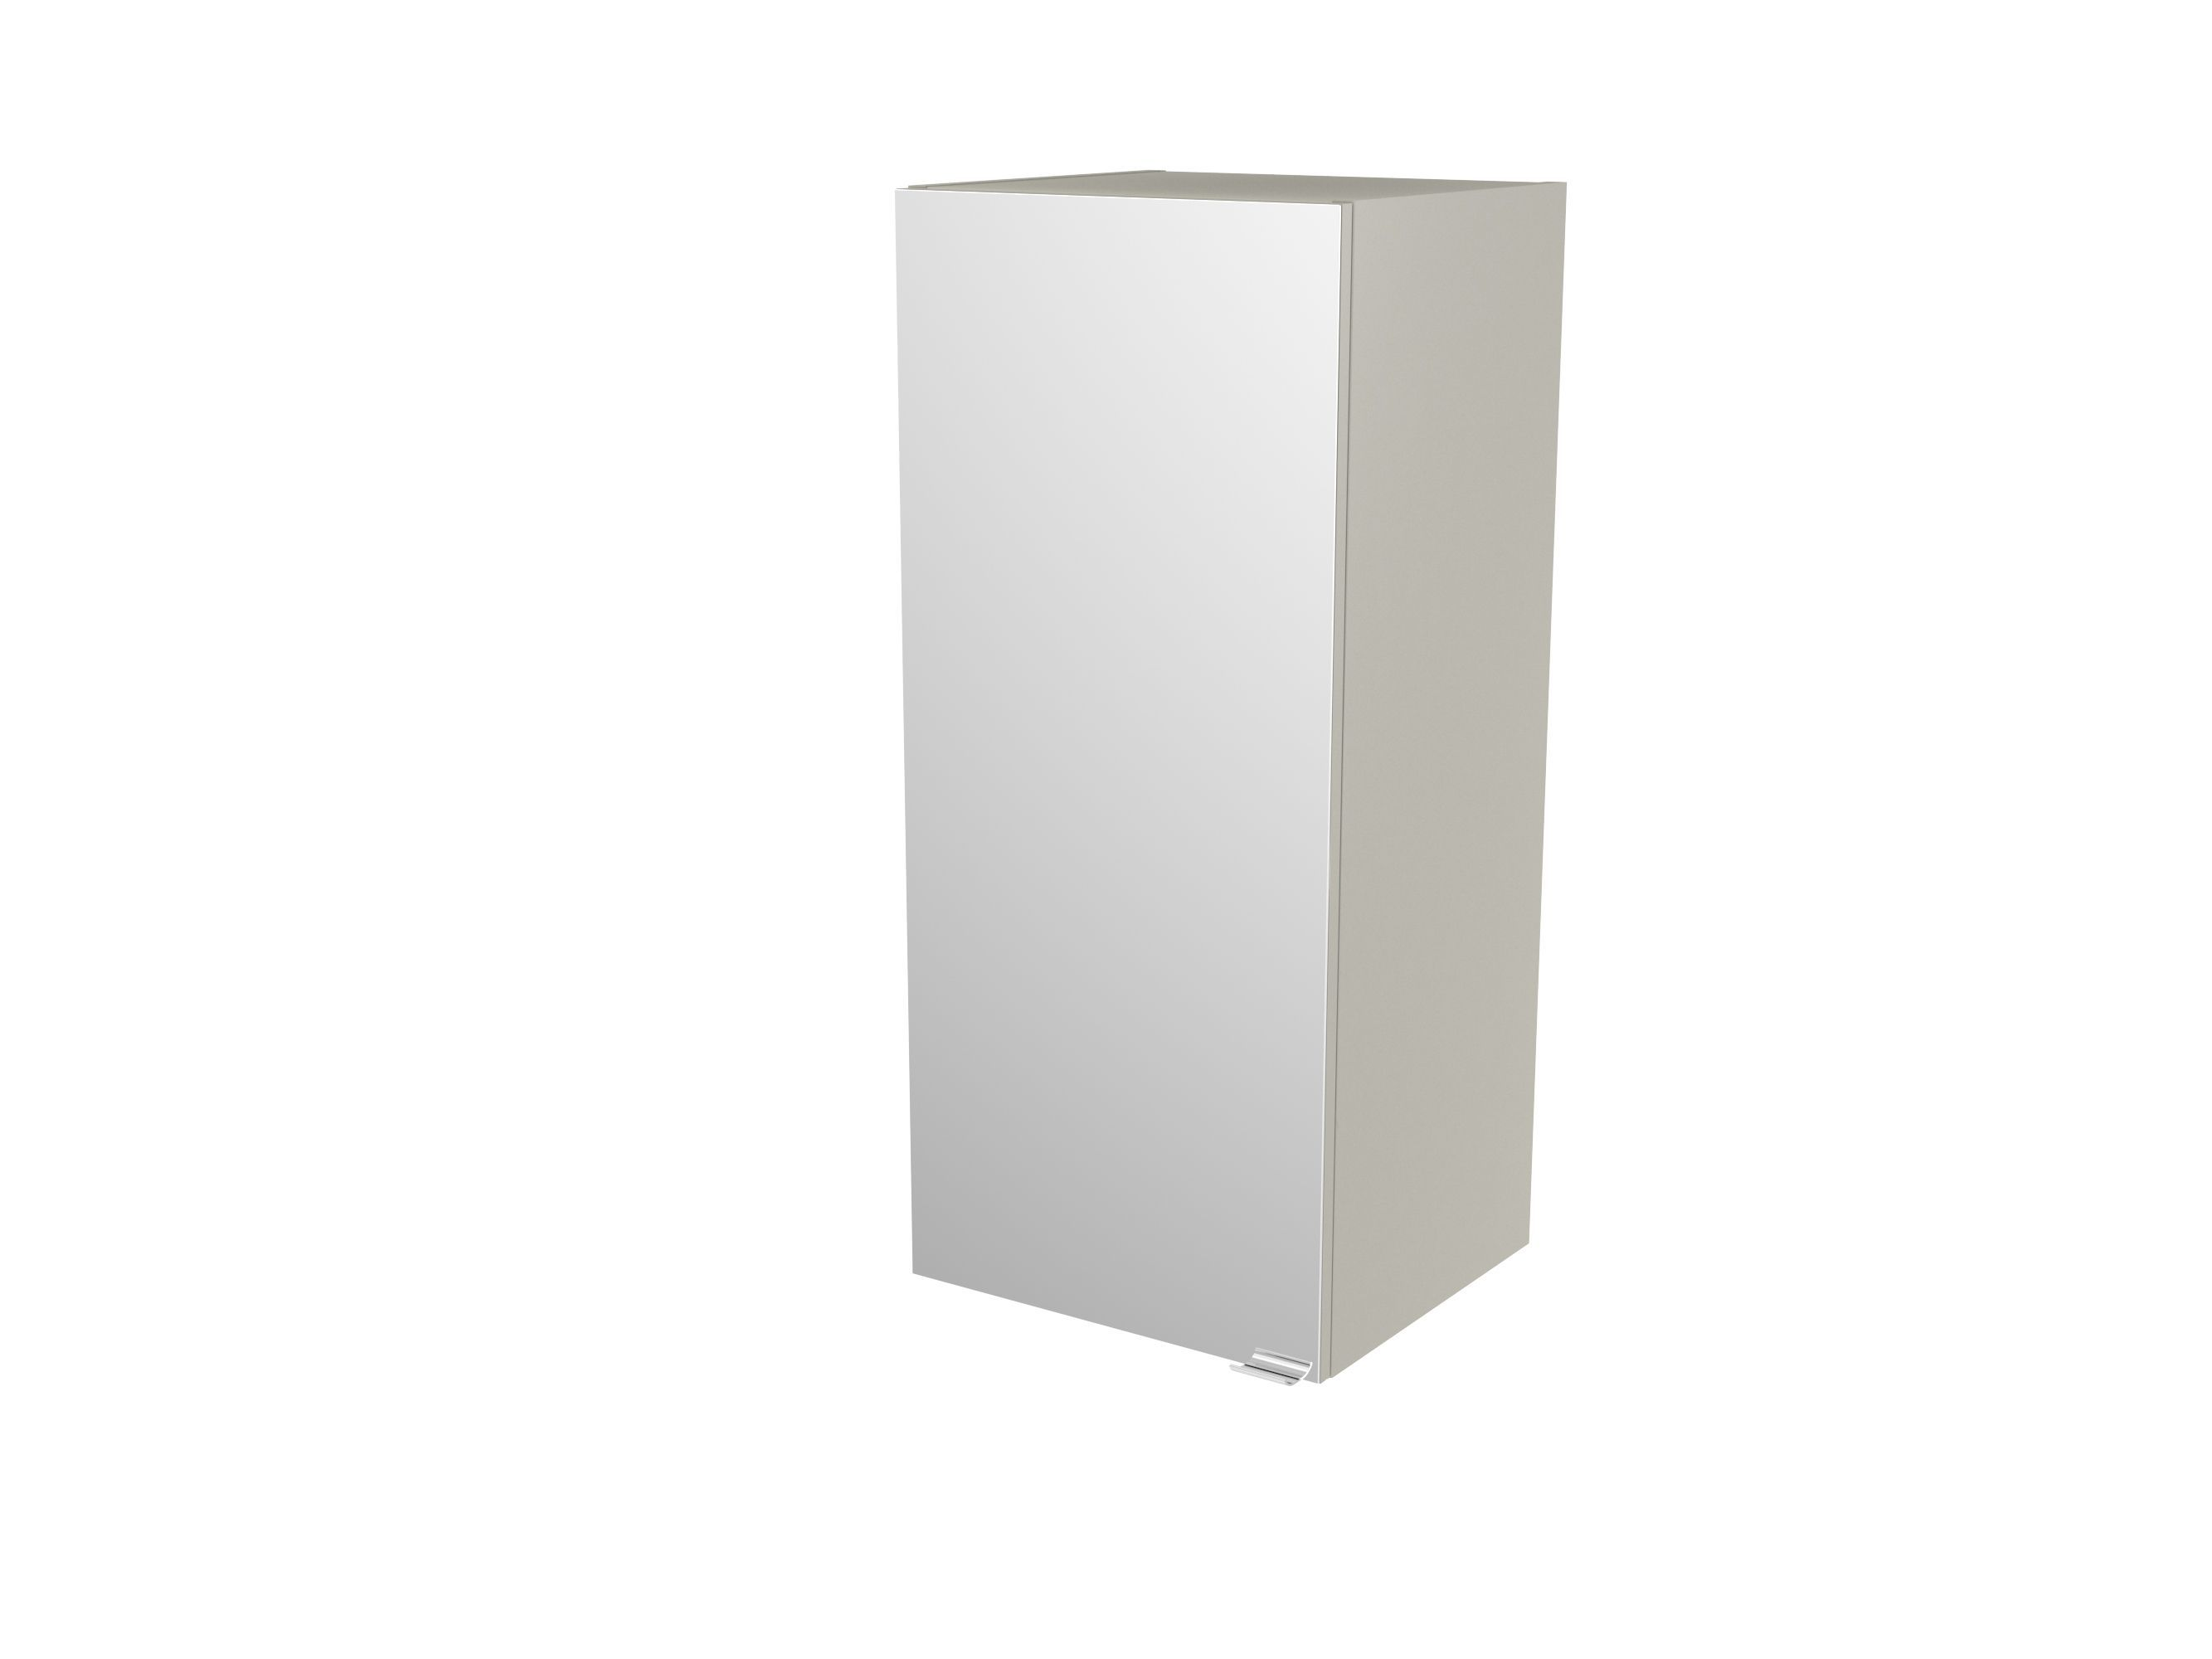 Cooke & Lewis Imandra Gloss Taupe Deep Mirrored Wall Cabinet, (w)400mm